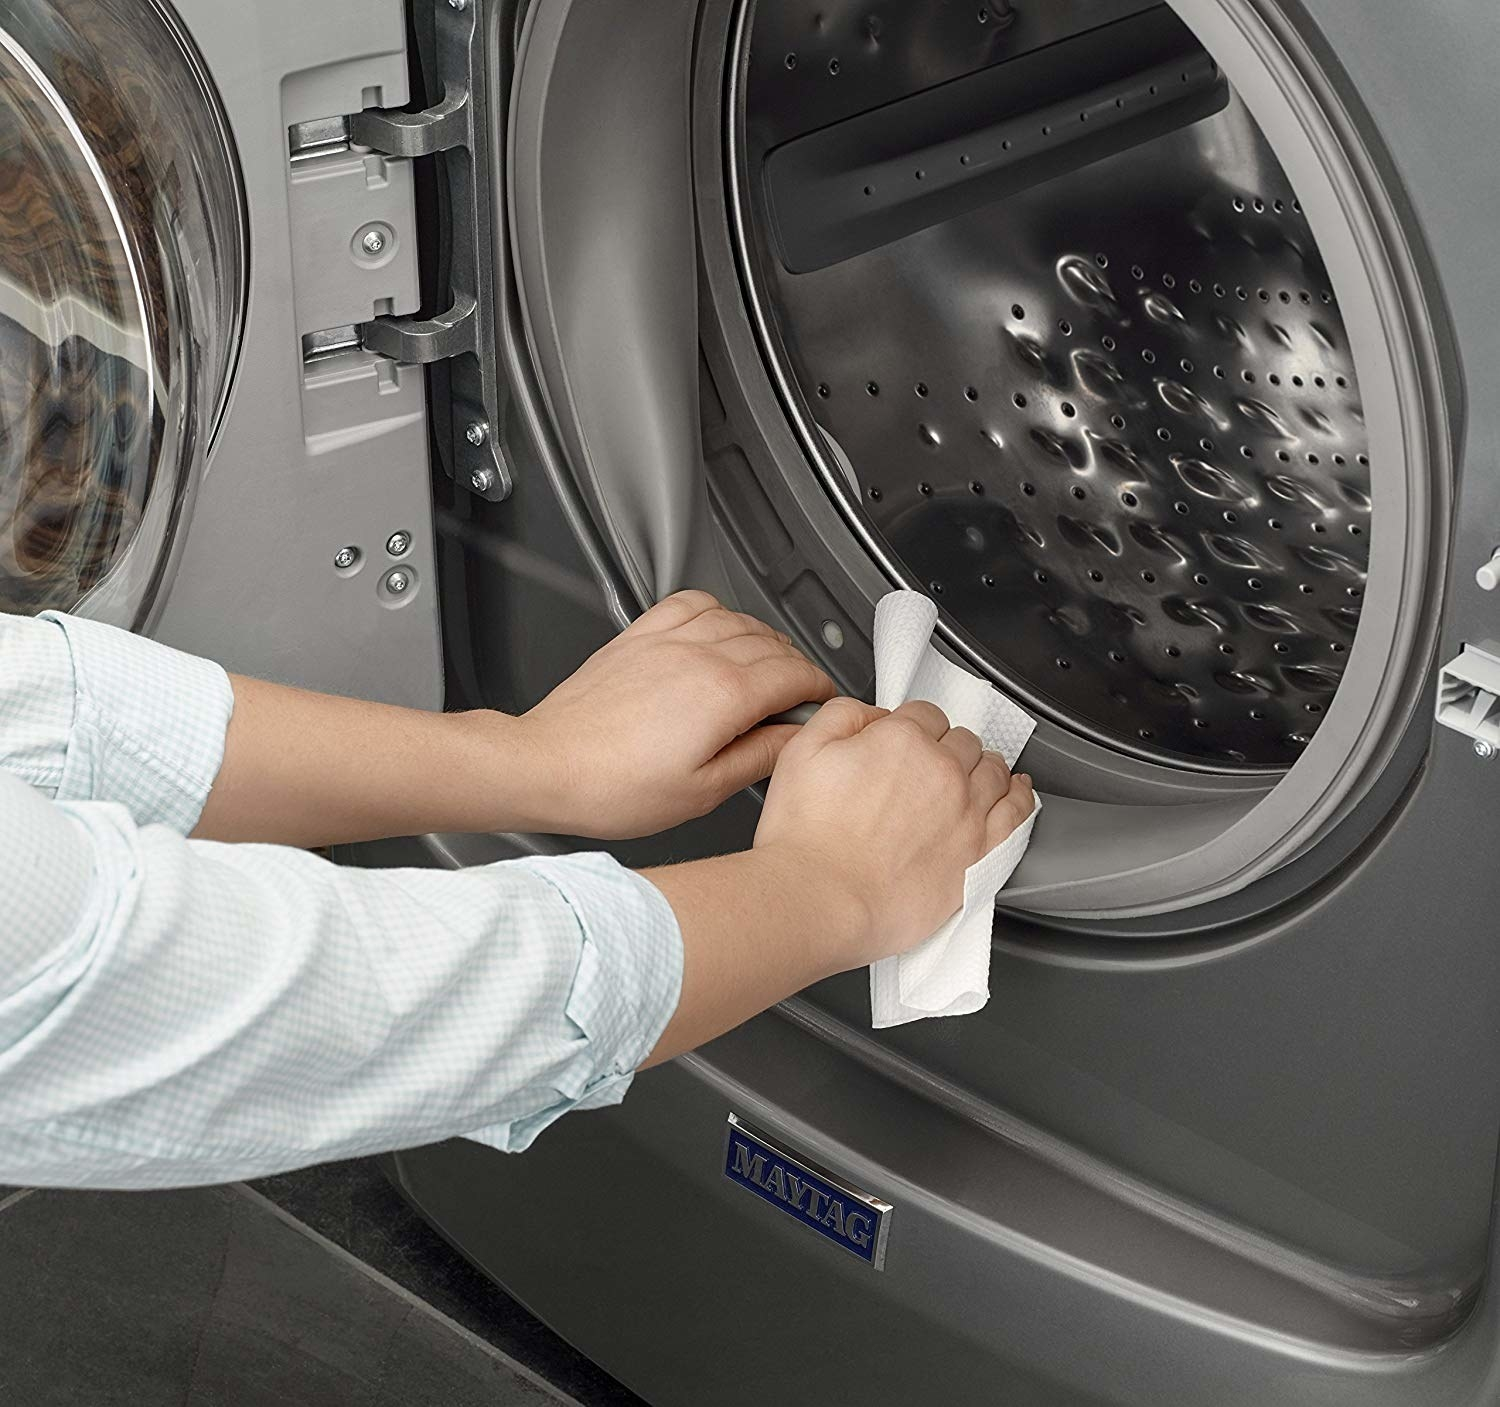 A person cleaning the inside of their washing machine with a thick cloth